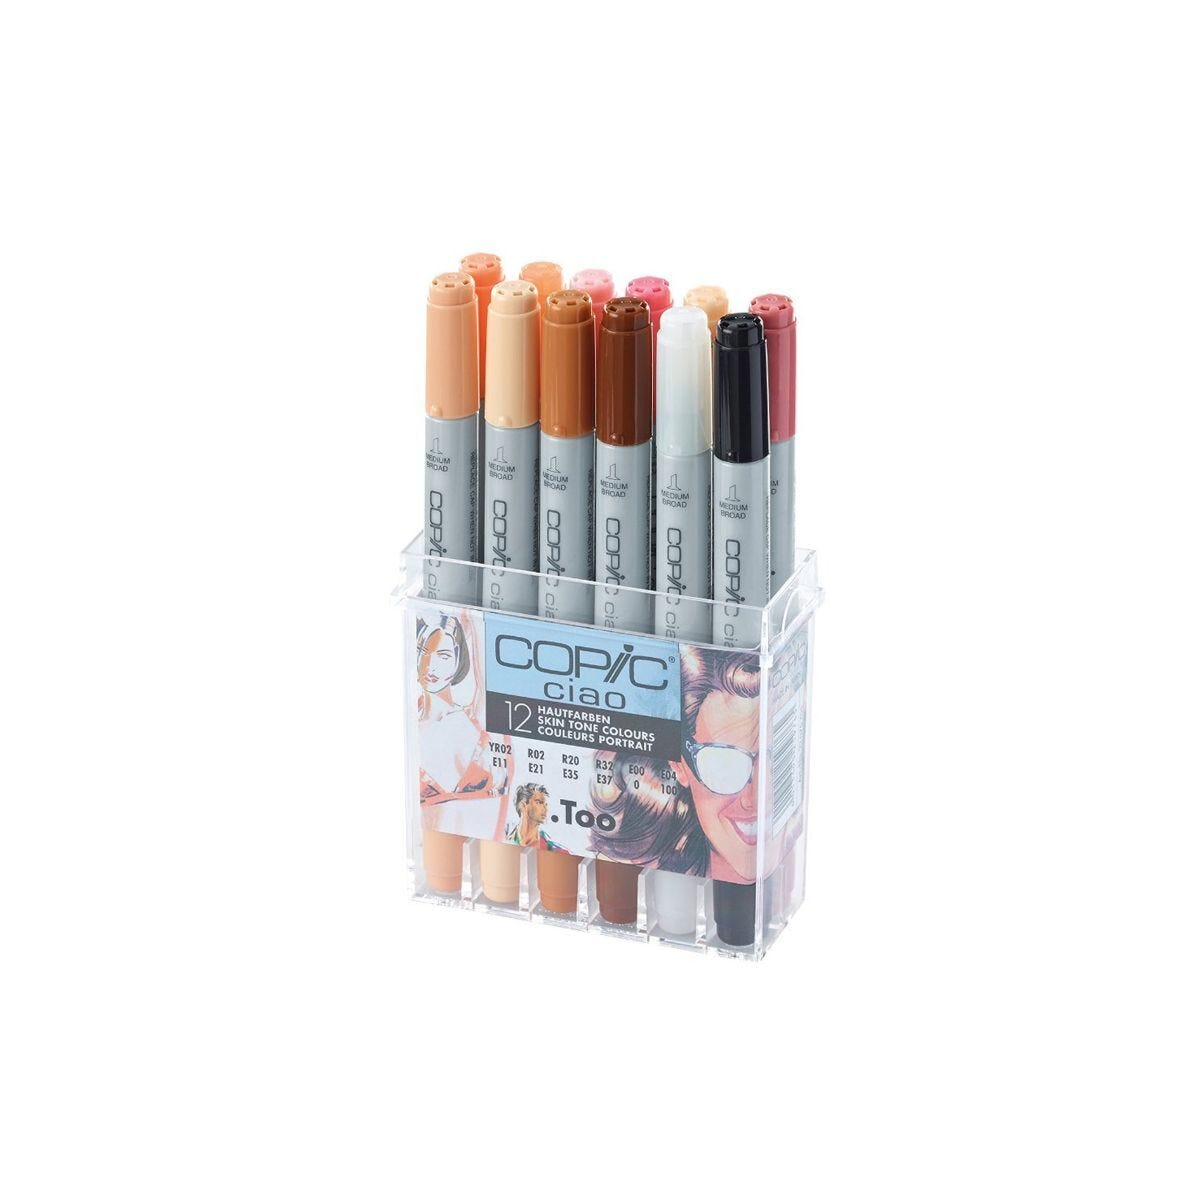 Copic Ciao Marker Pens Skin Tone Colours Pack of 12